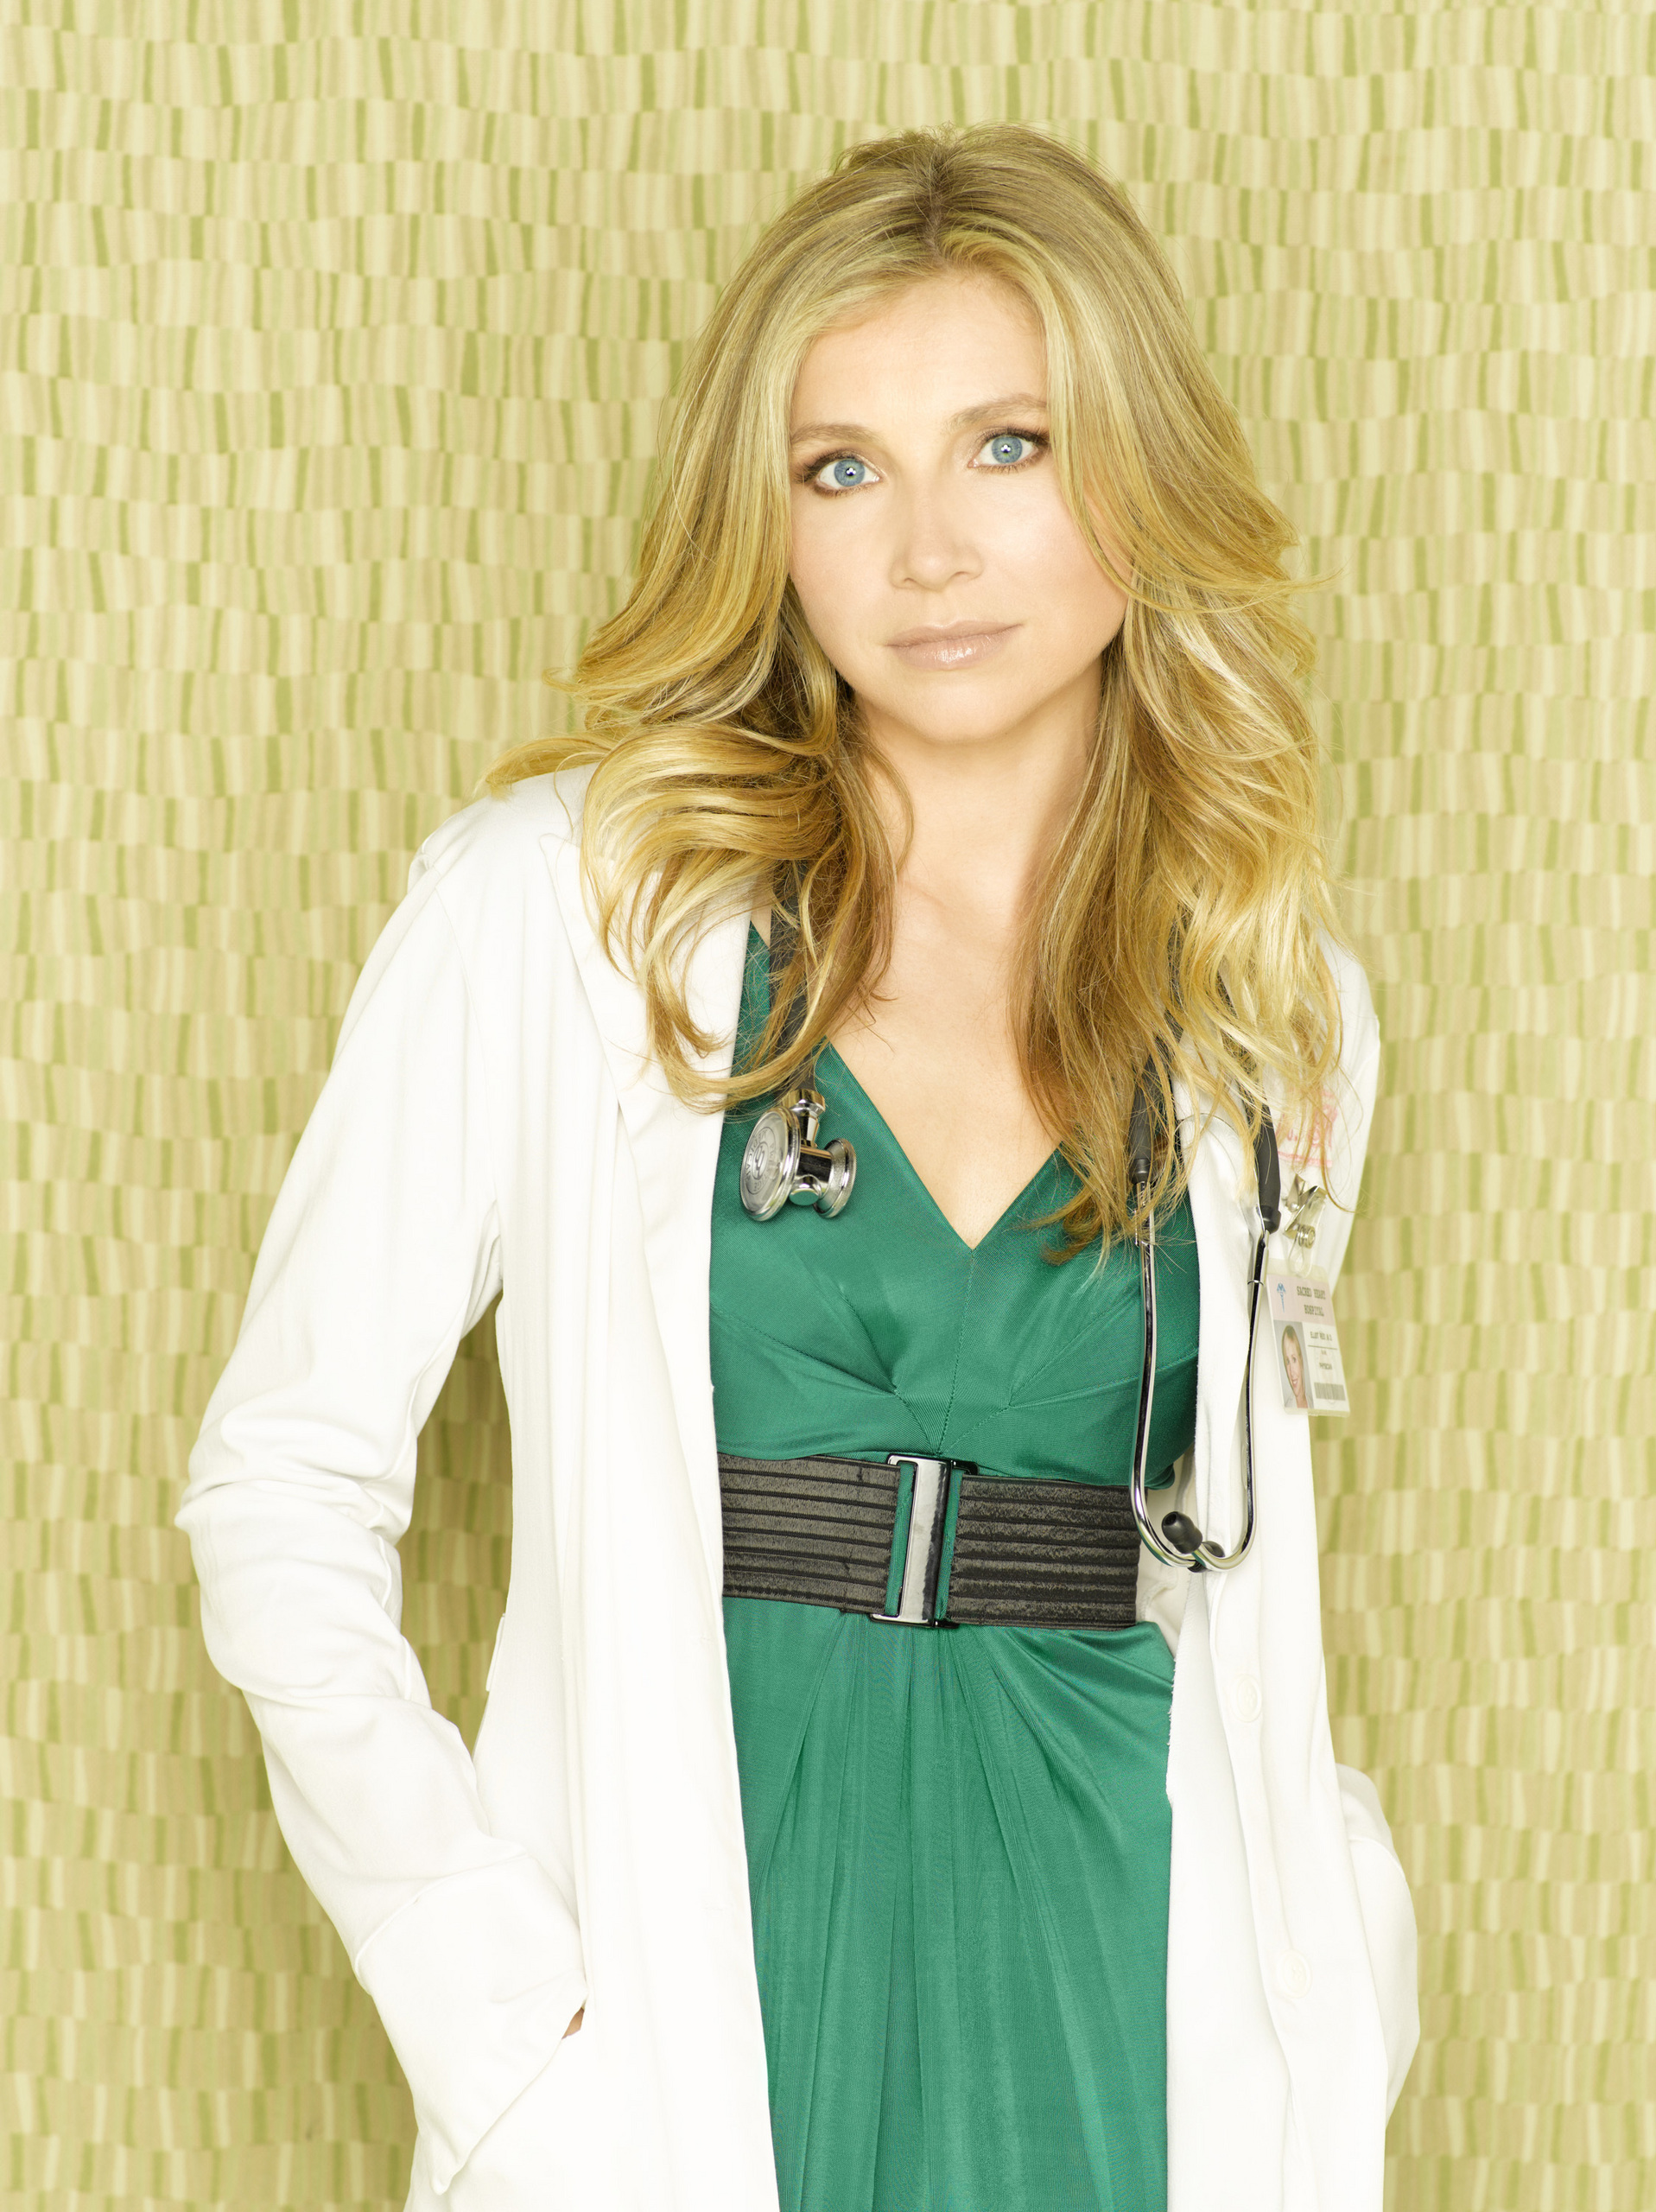 http://images2.fanpop.com/images/photos/2800000/Season-8-Promotional-Cast-Photos-scrubs-2889409-1917-2560.jpg